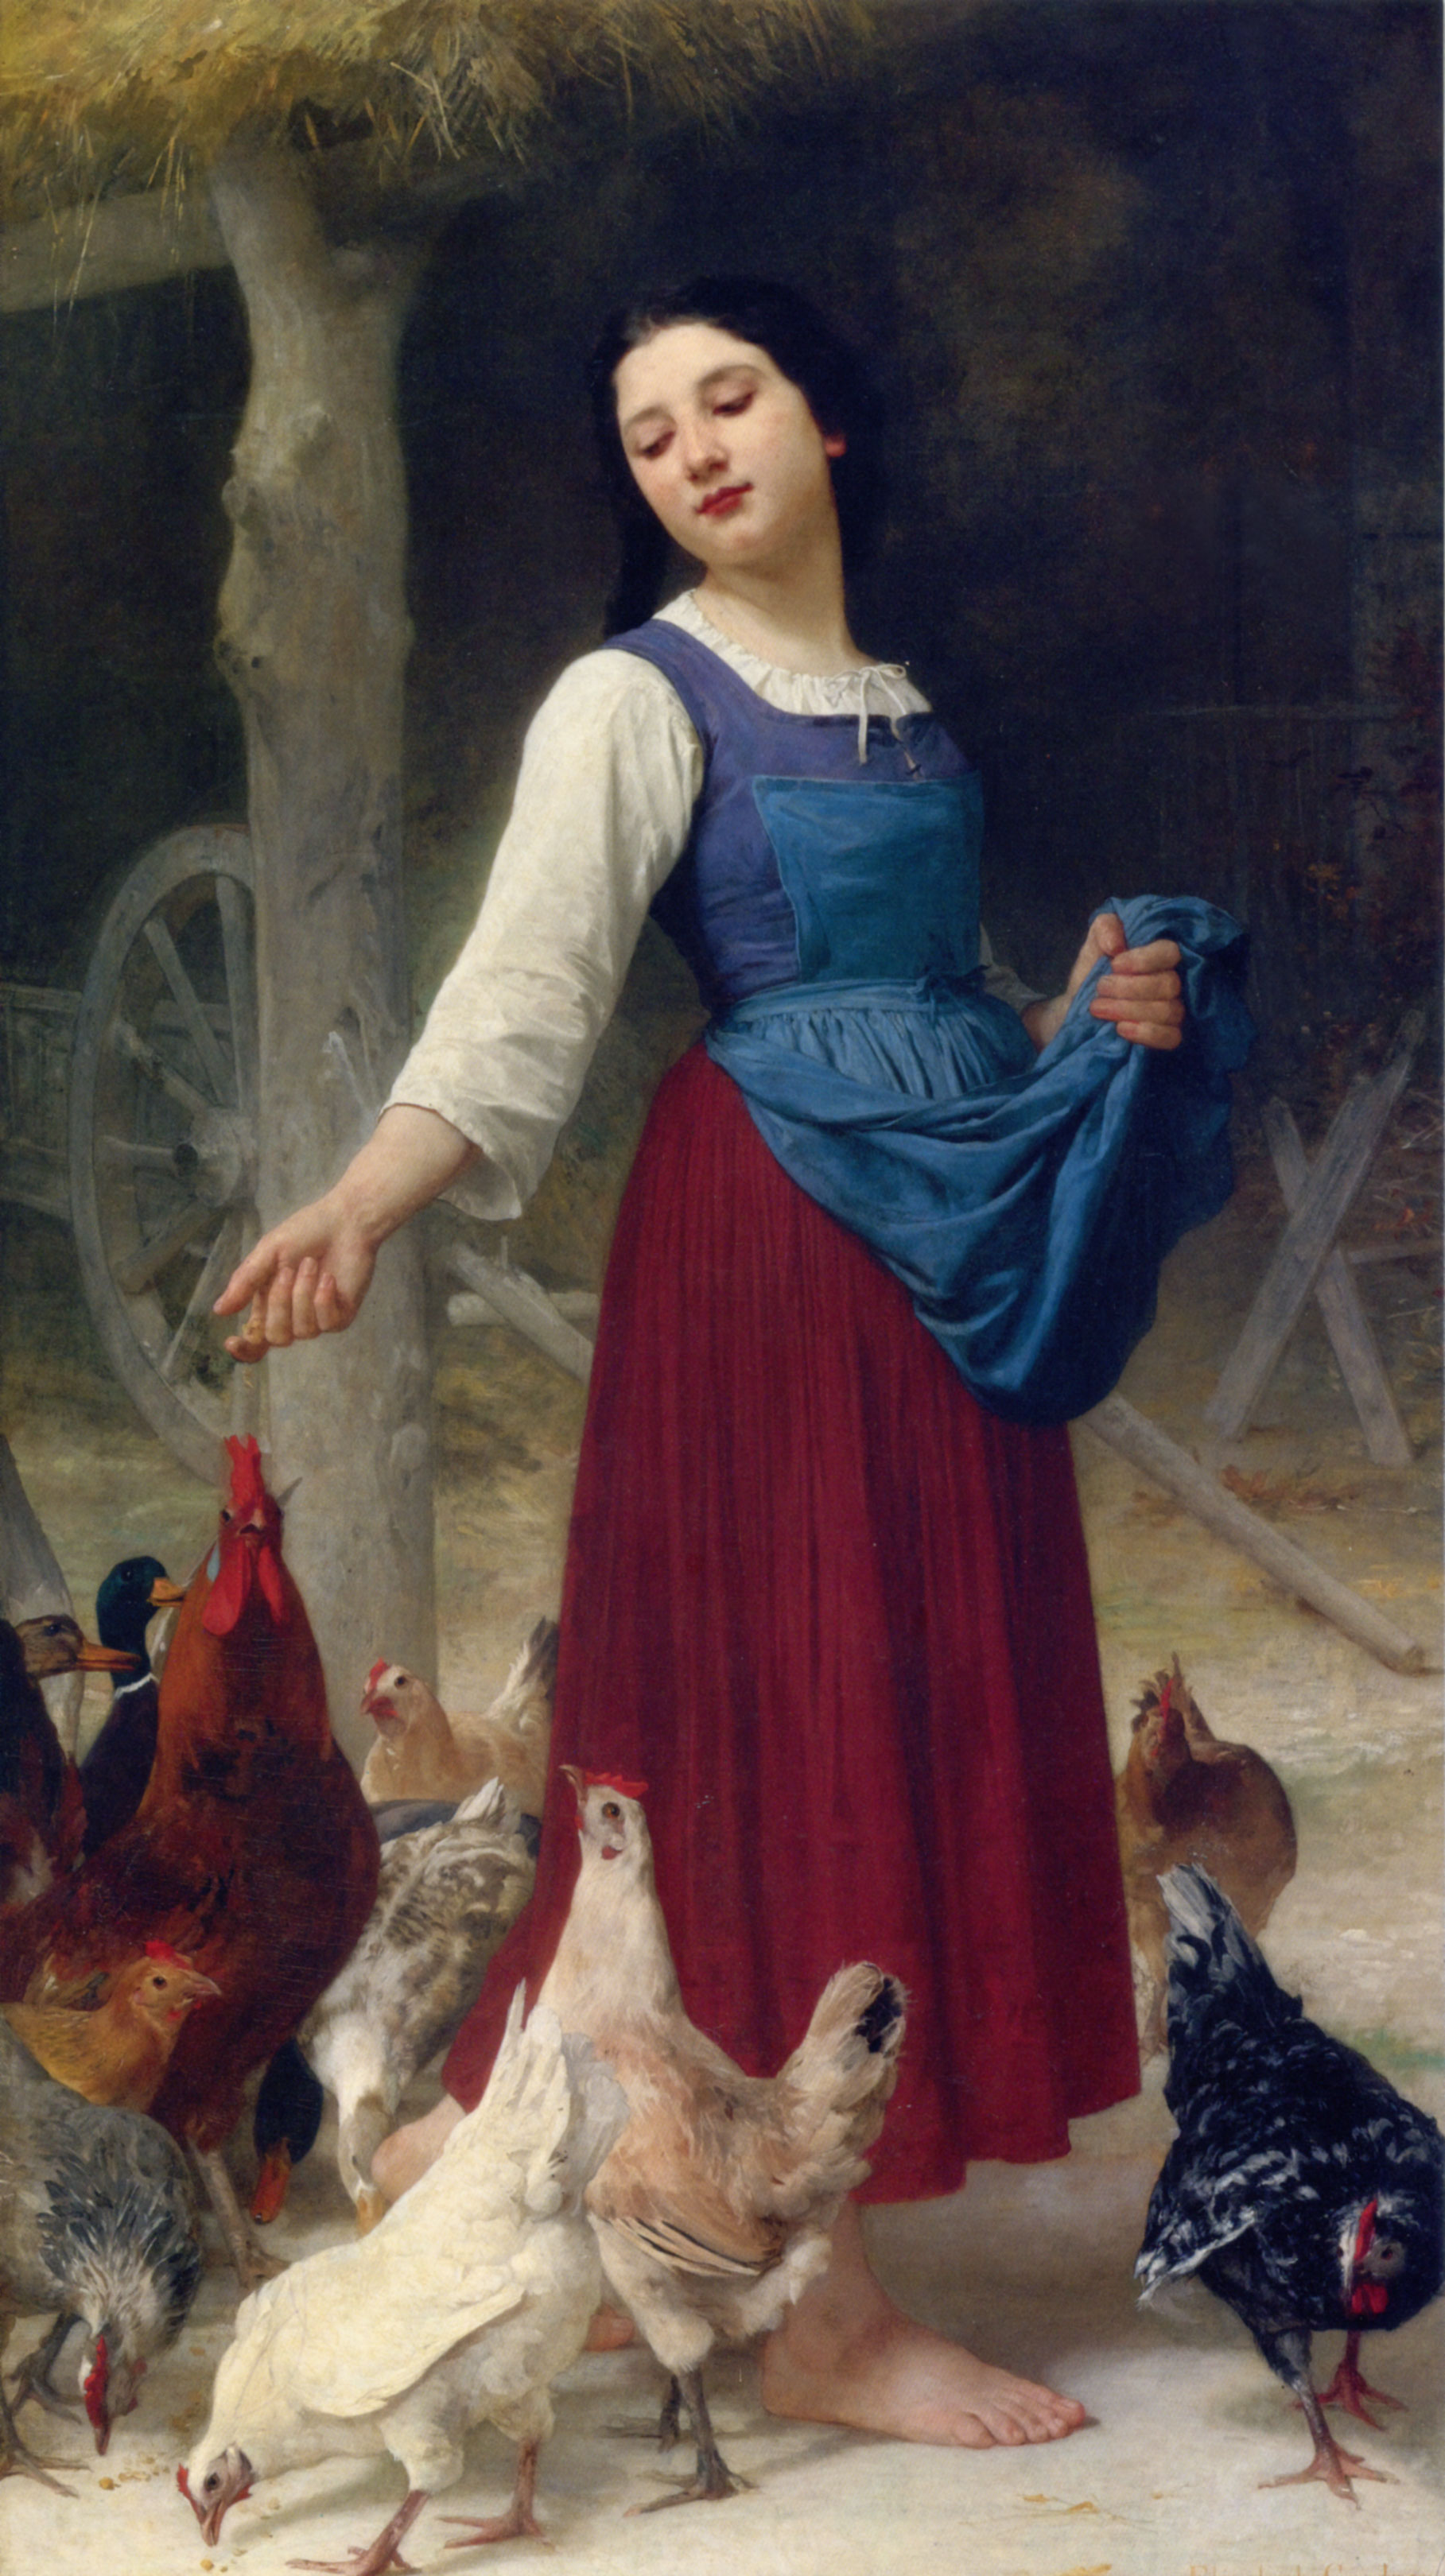 The-Farmers-Daughter-by-Elizabeth-Jane-Gardner-Bouguereau